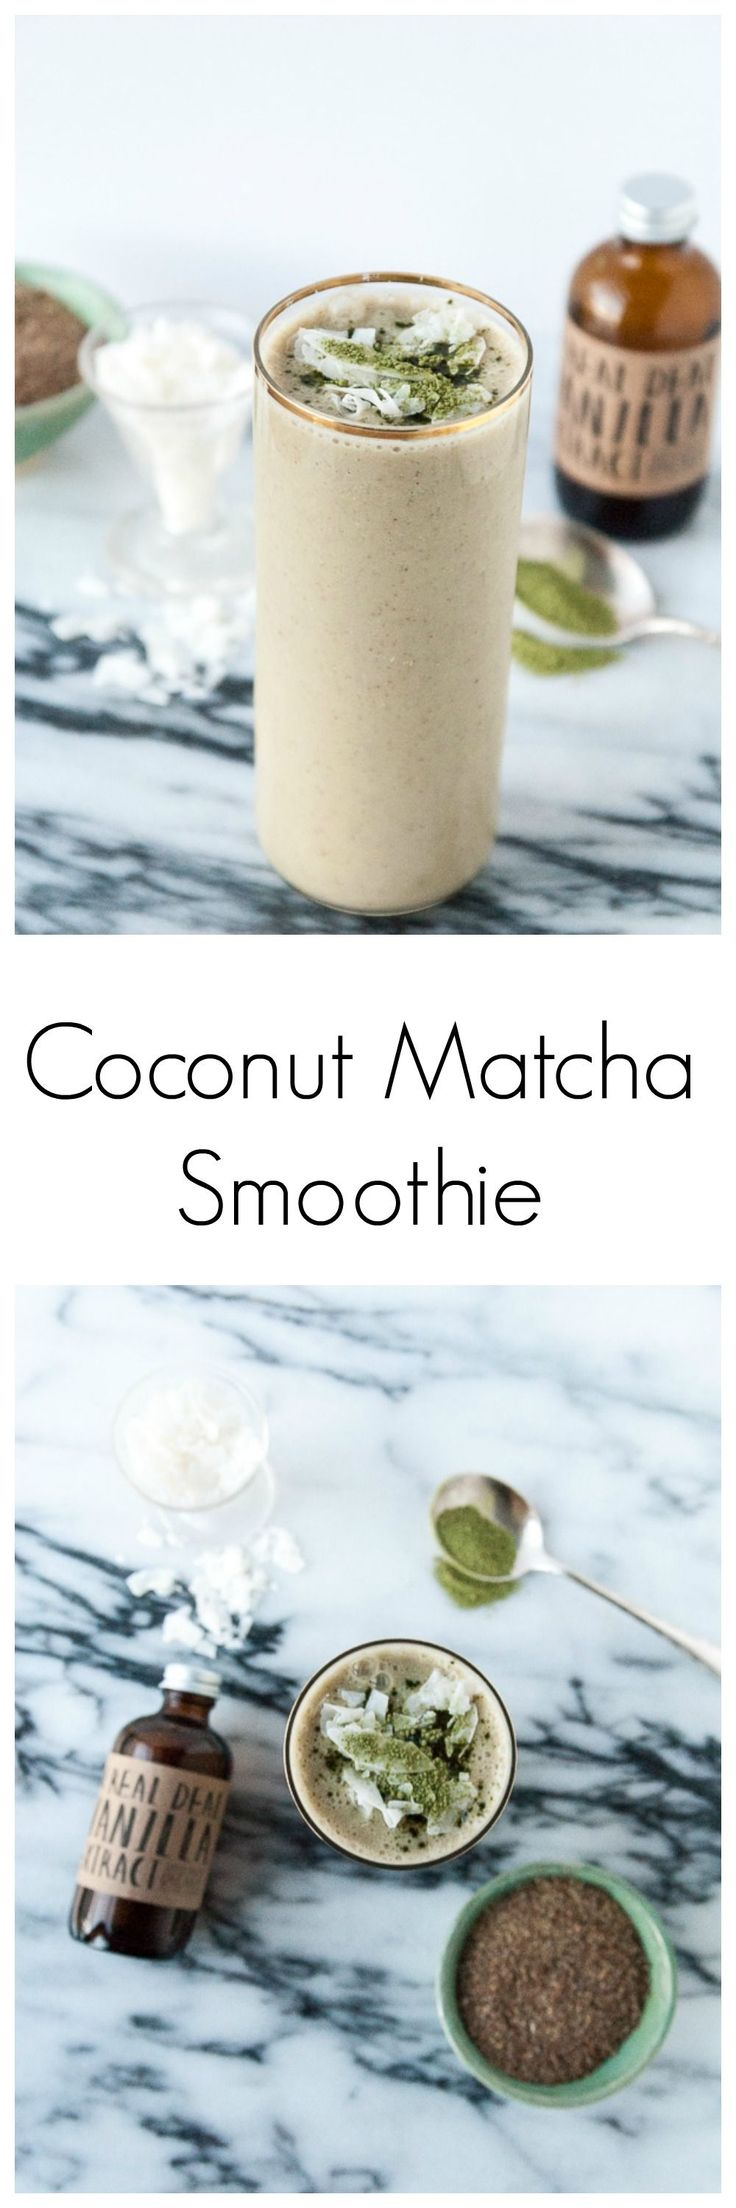 Coconut Matcha Smoothie- A healthy matcha smoothie chock full of bananas, coconut and all kinds of goodness! Perfect for breakfast or a quick power snack.